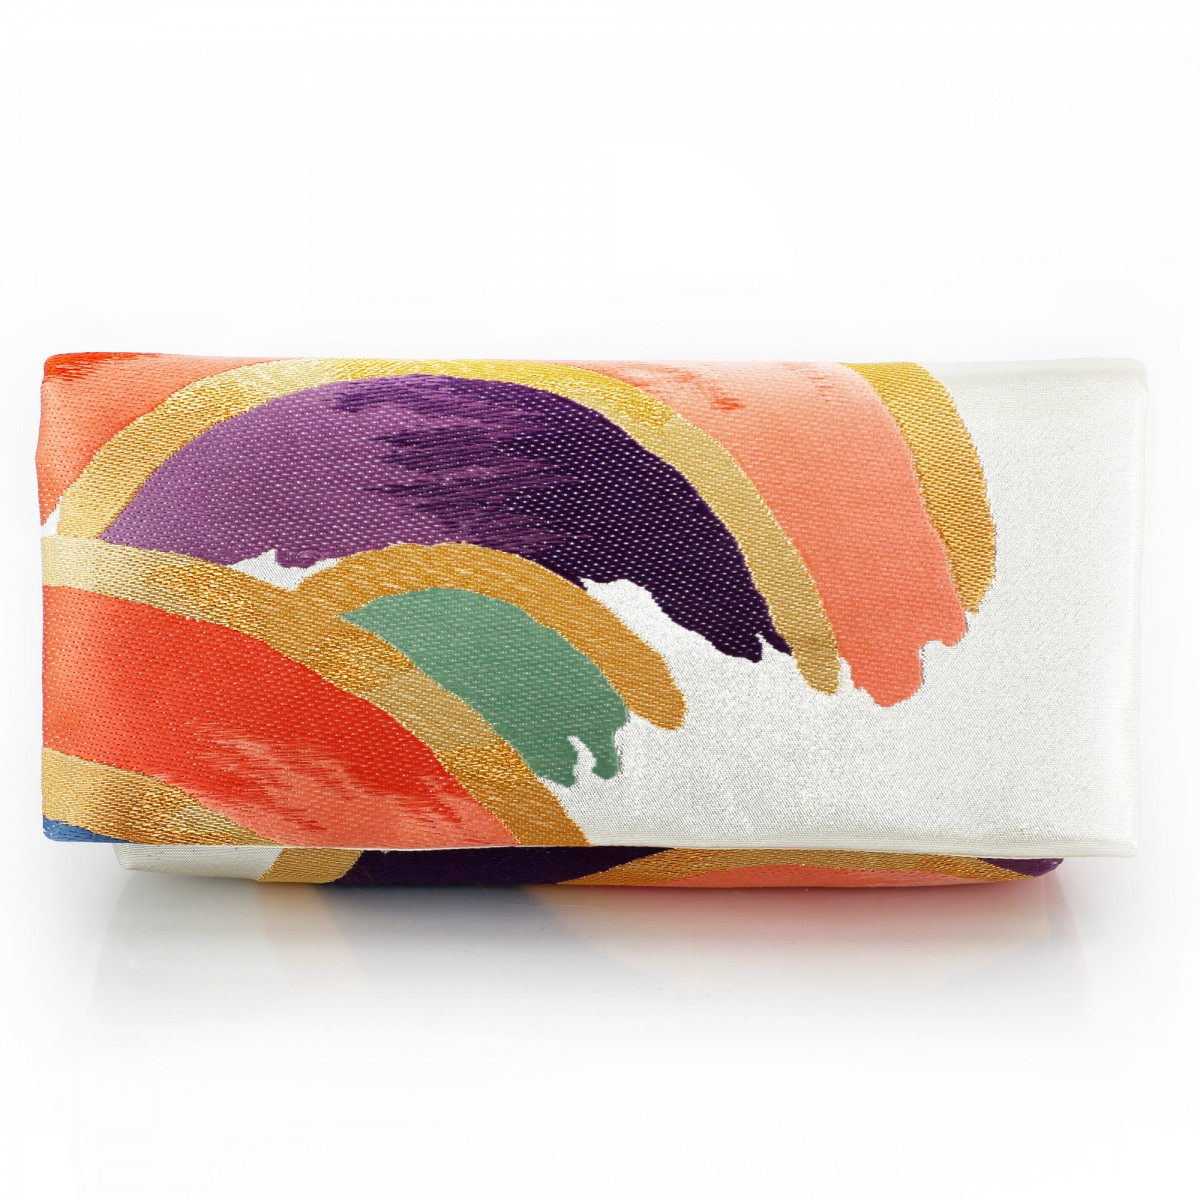 Kimono Envelope Clutch with Seigaiha in Rainbow Colors